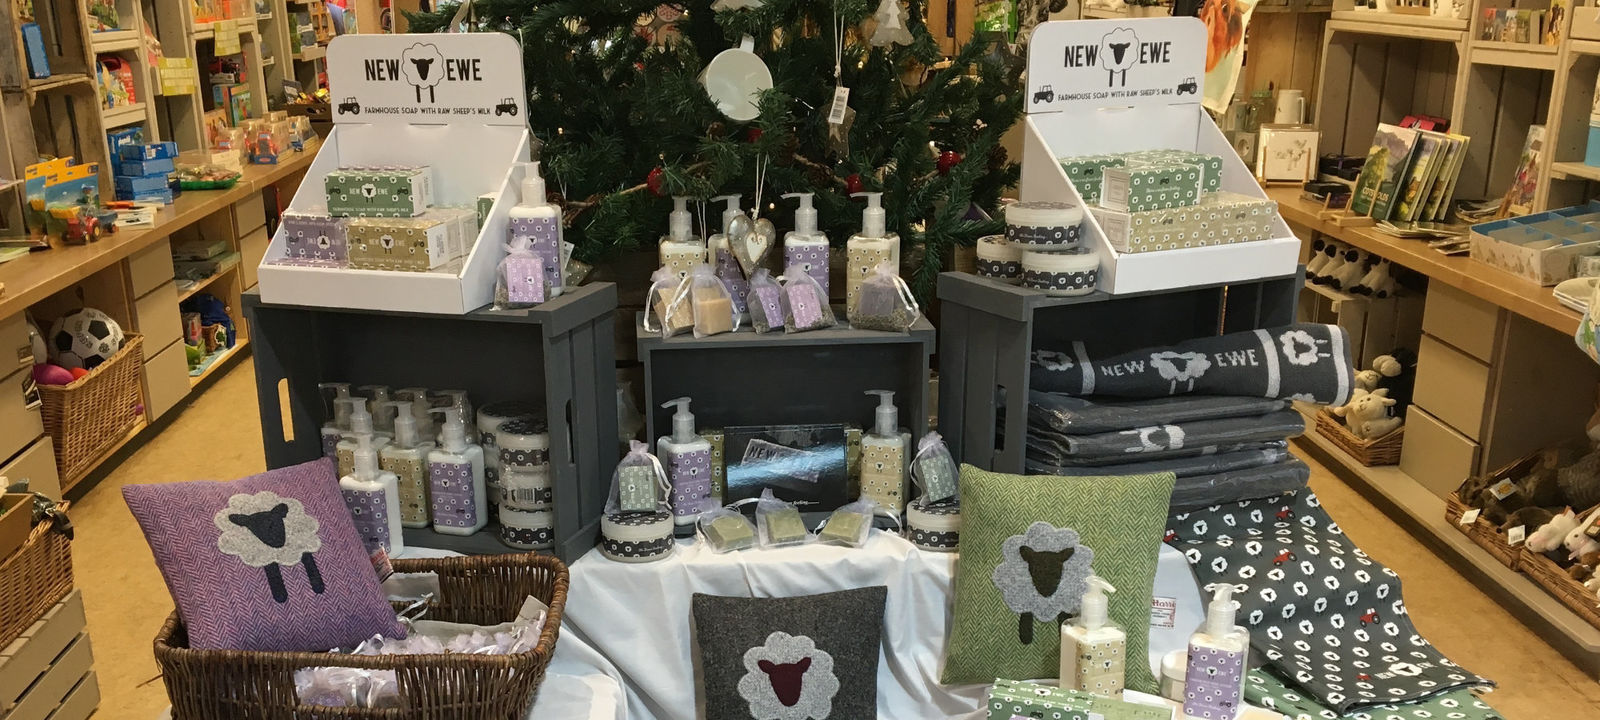 New Ewe Spa Product Range at a Pop Up Shop